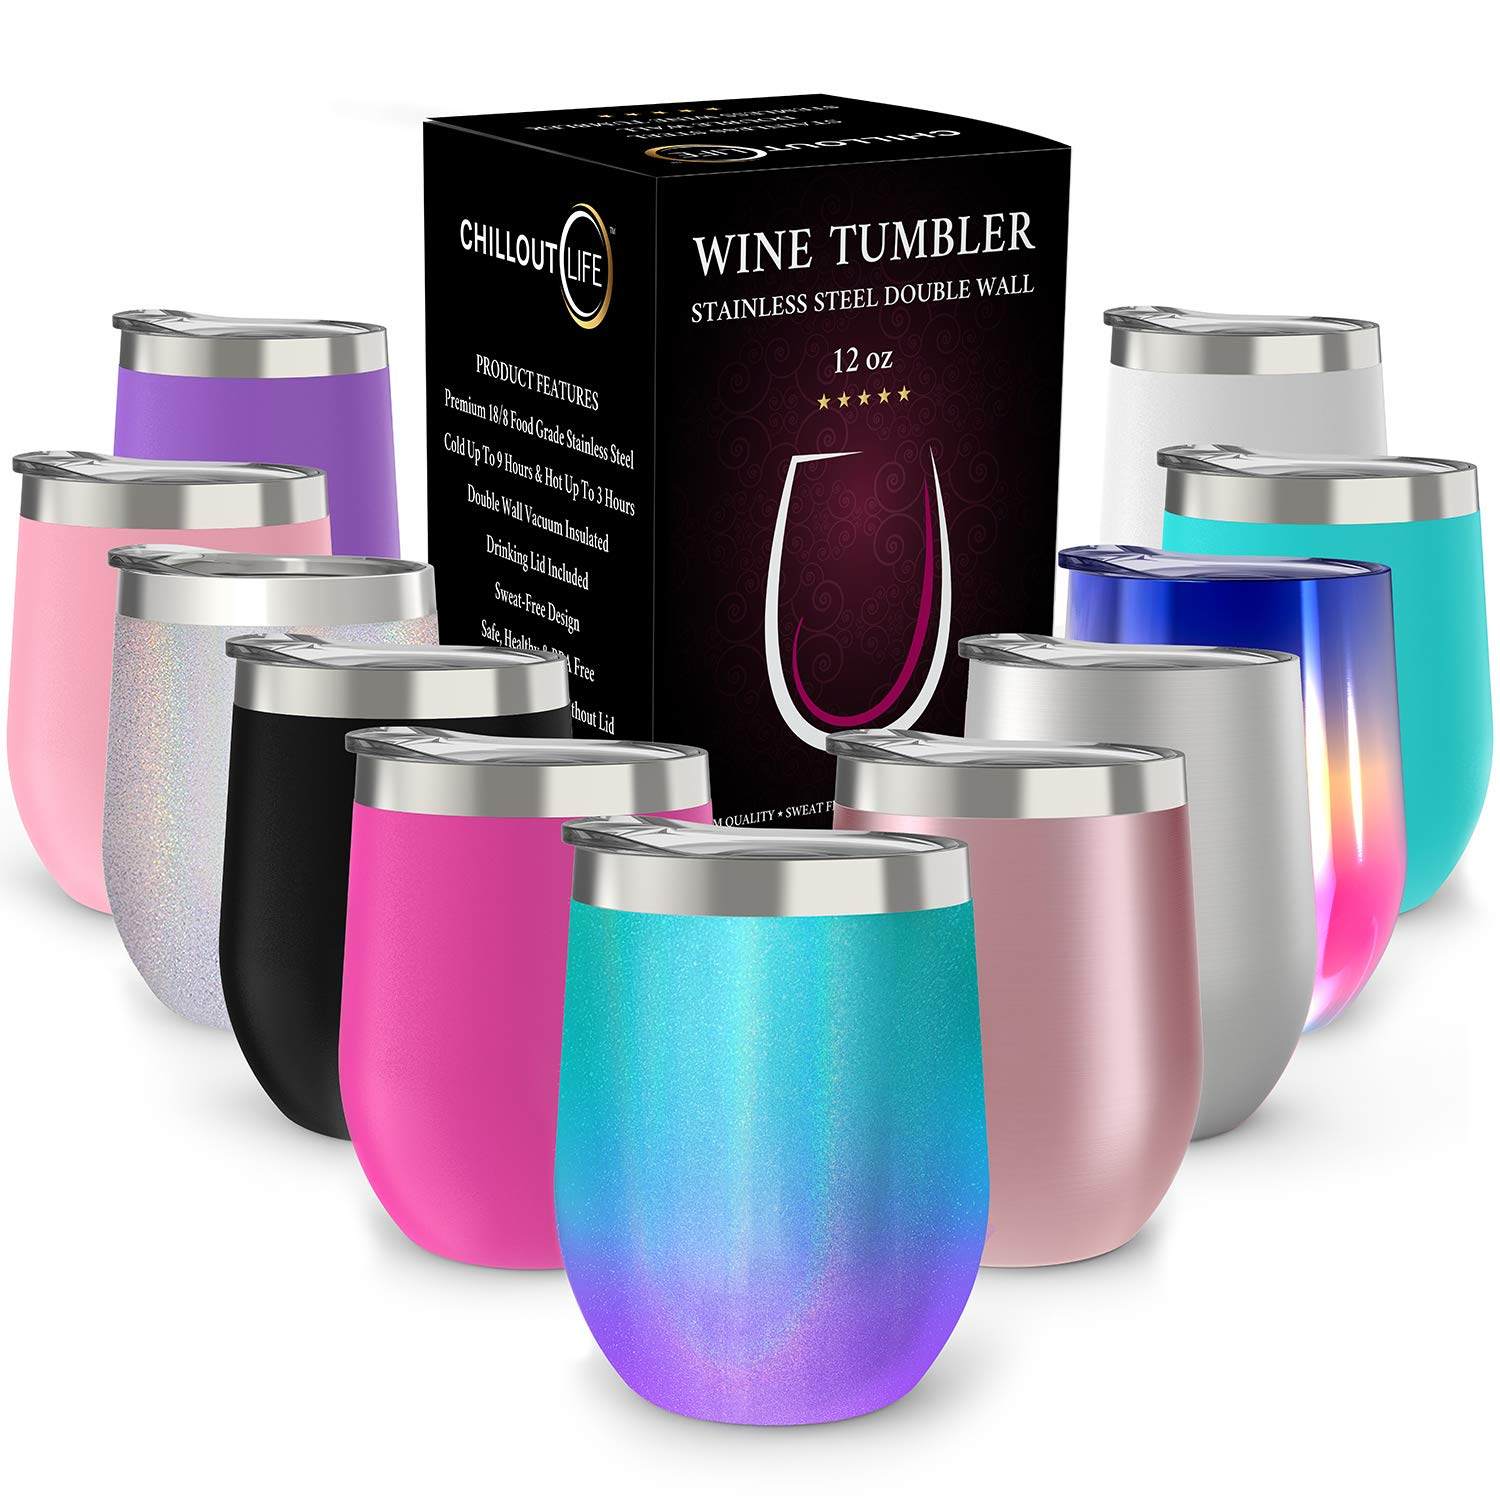 CHILLOUT LIFE 12 oz Stainless Steel Tumbler with Lid & Gift Box | Wine Tumbler Double Wall Vacuum Insulated Travel Tumbler Cup for Coffee, Wine, Cocktails, Ice Cream - Mermaid Sparkle